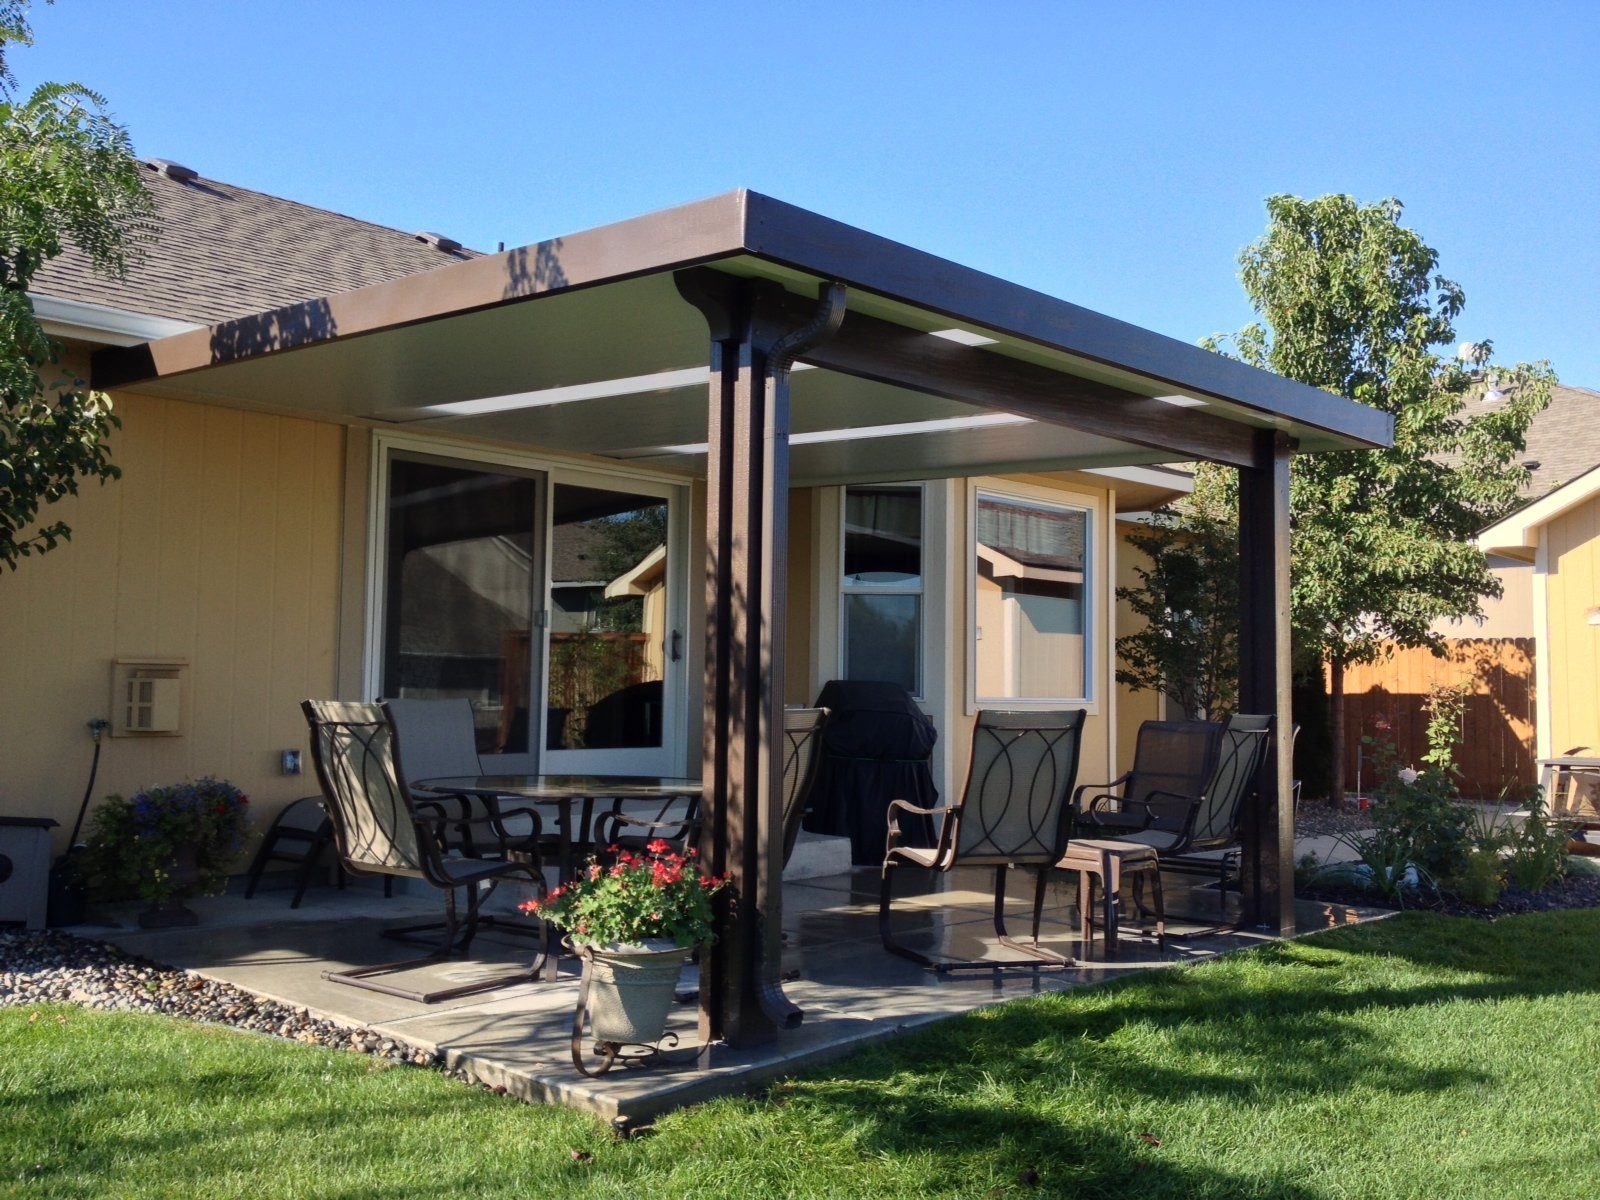 Patio cover gallery backyard by design for Patio cover ideas designs